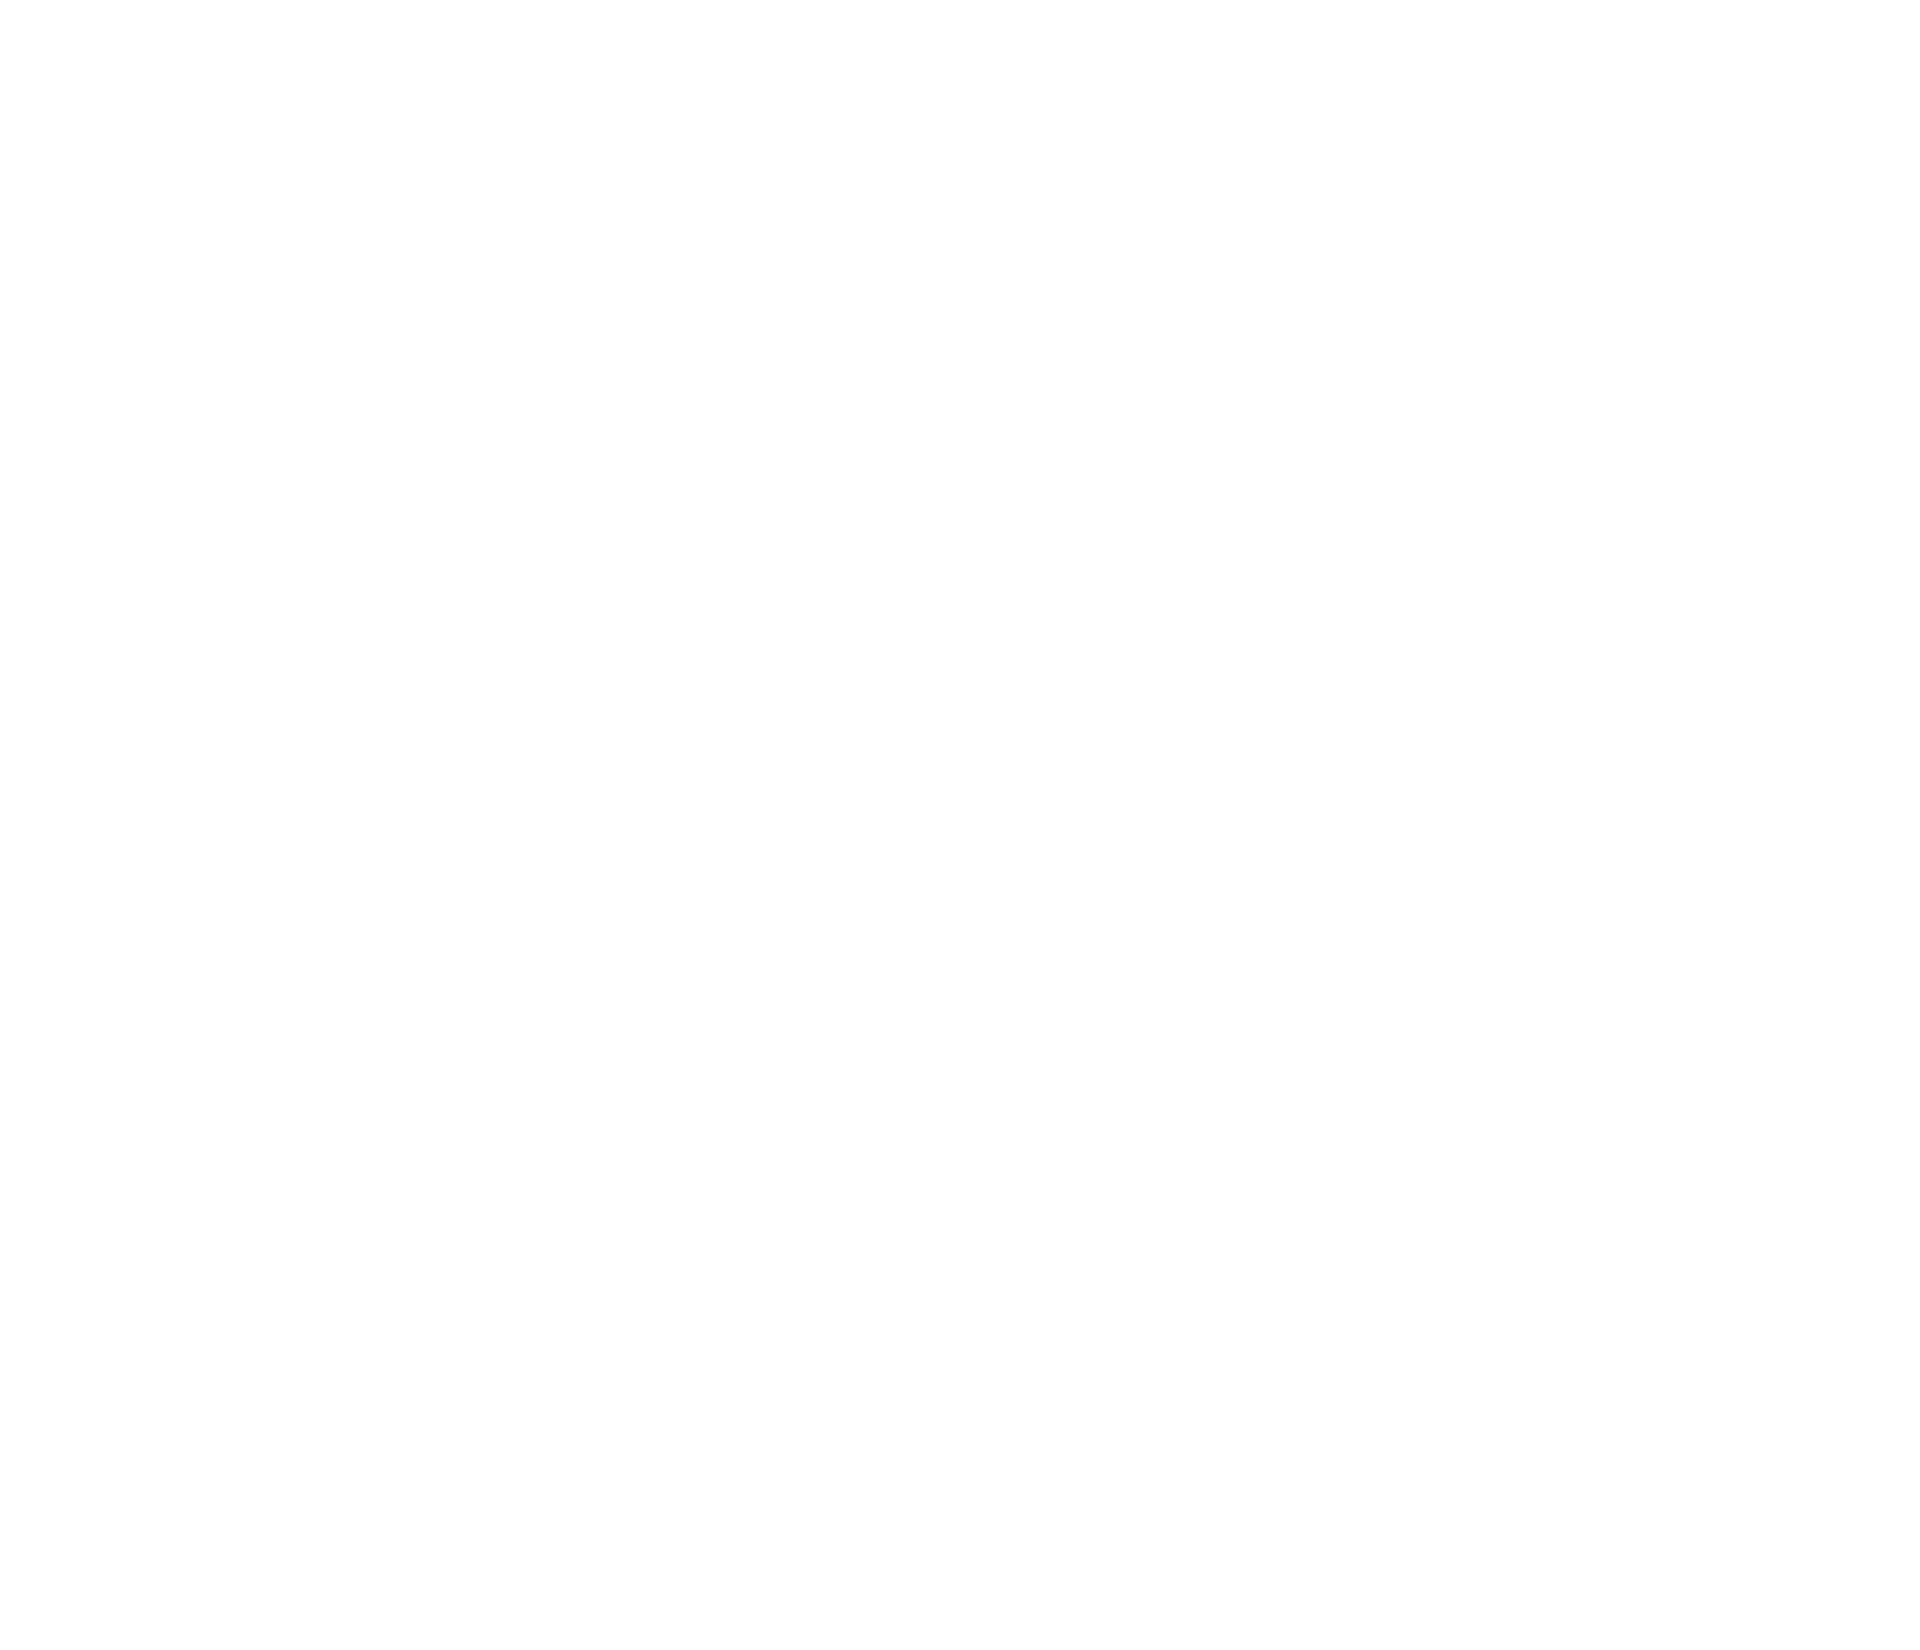 SFE's  Guarantee: We stand behind our pledge to increase K-12 program participation and revenues because we have learned our fresh-from-scratch approach to fueling healthy, happy students also consistently fuels program financial success for your district.